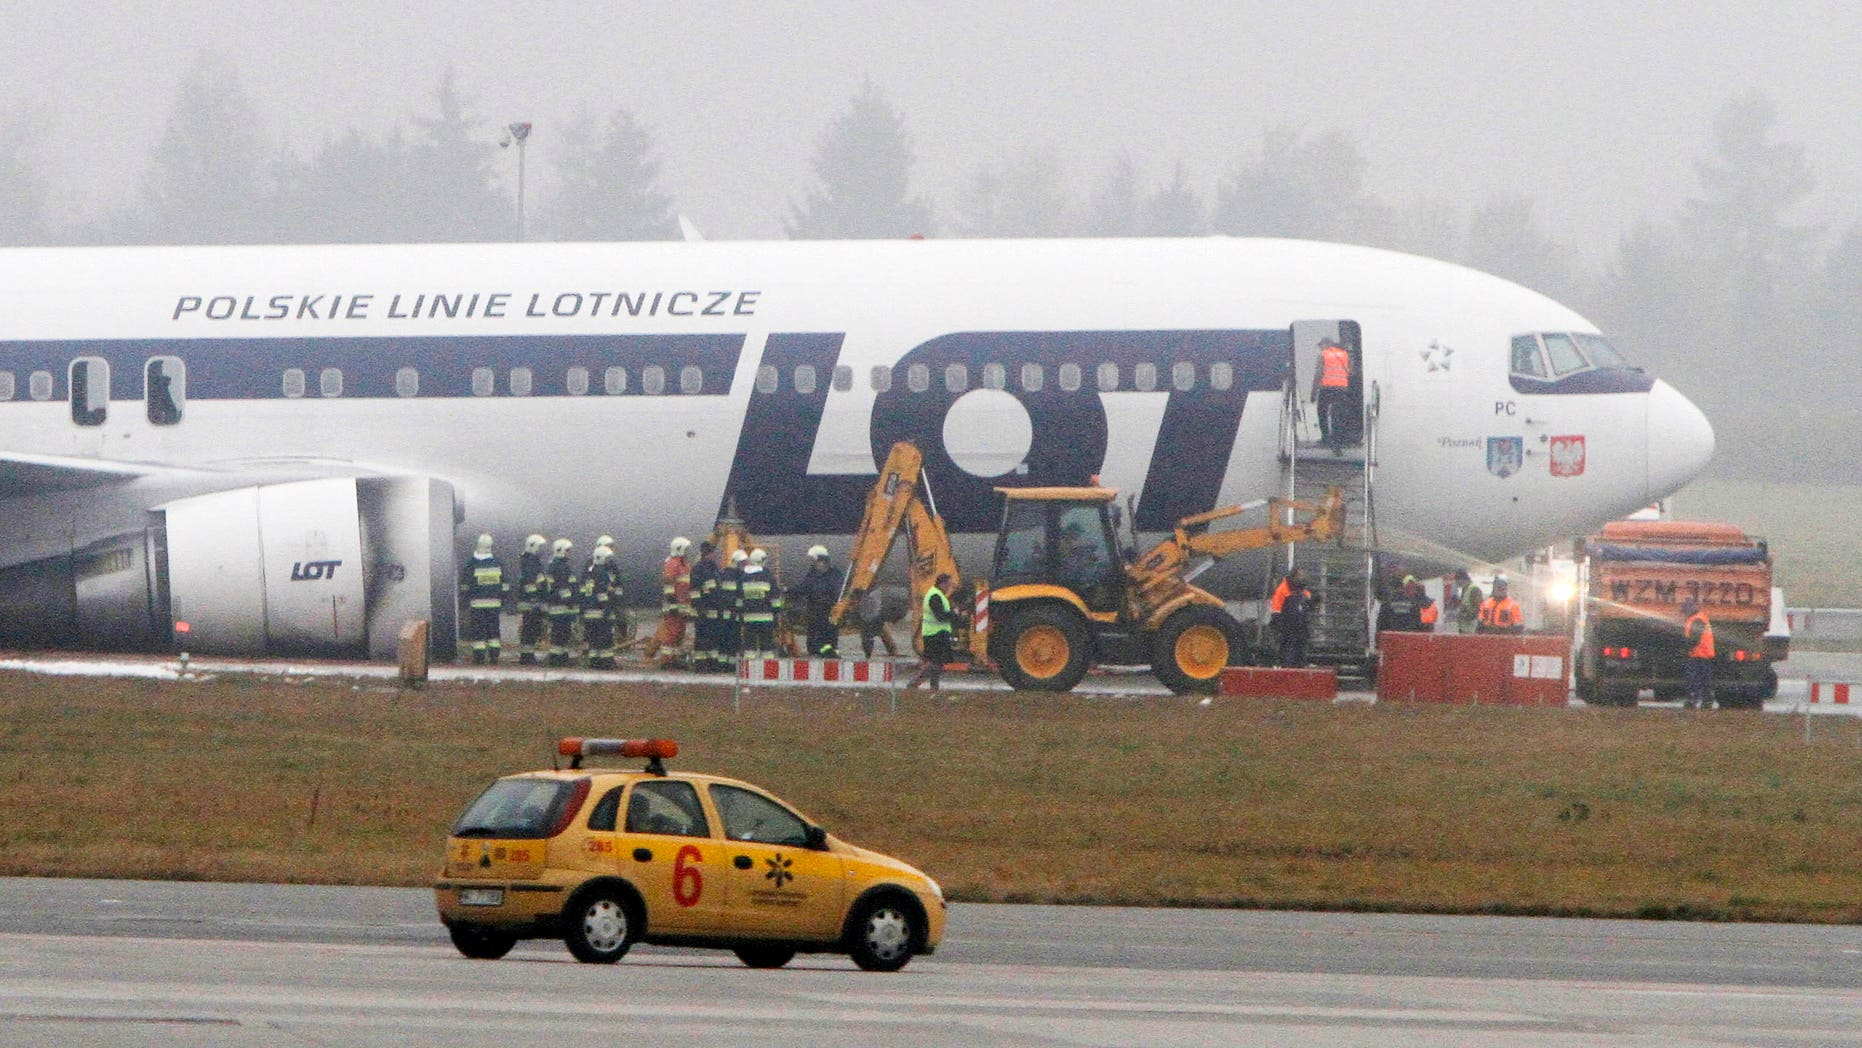 Nov. 2, 2011: Staff of the Frederic Chopin airport in Warsaw, Poland, prepare to move a Boeing 767 of Polish LOT airlines to unblock one of the airport's two runways and allow for air traffic.